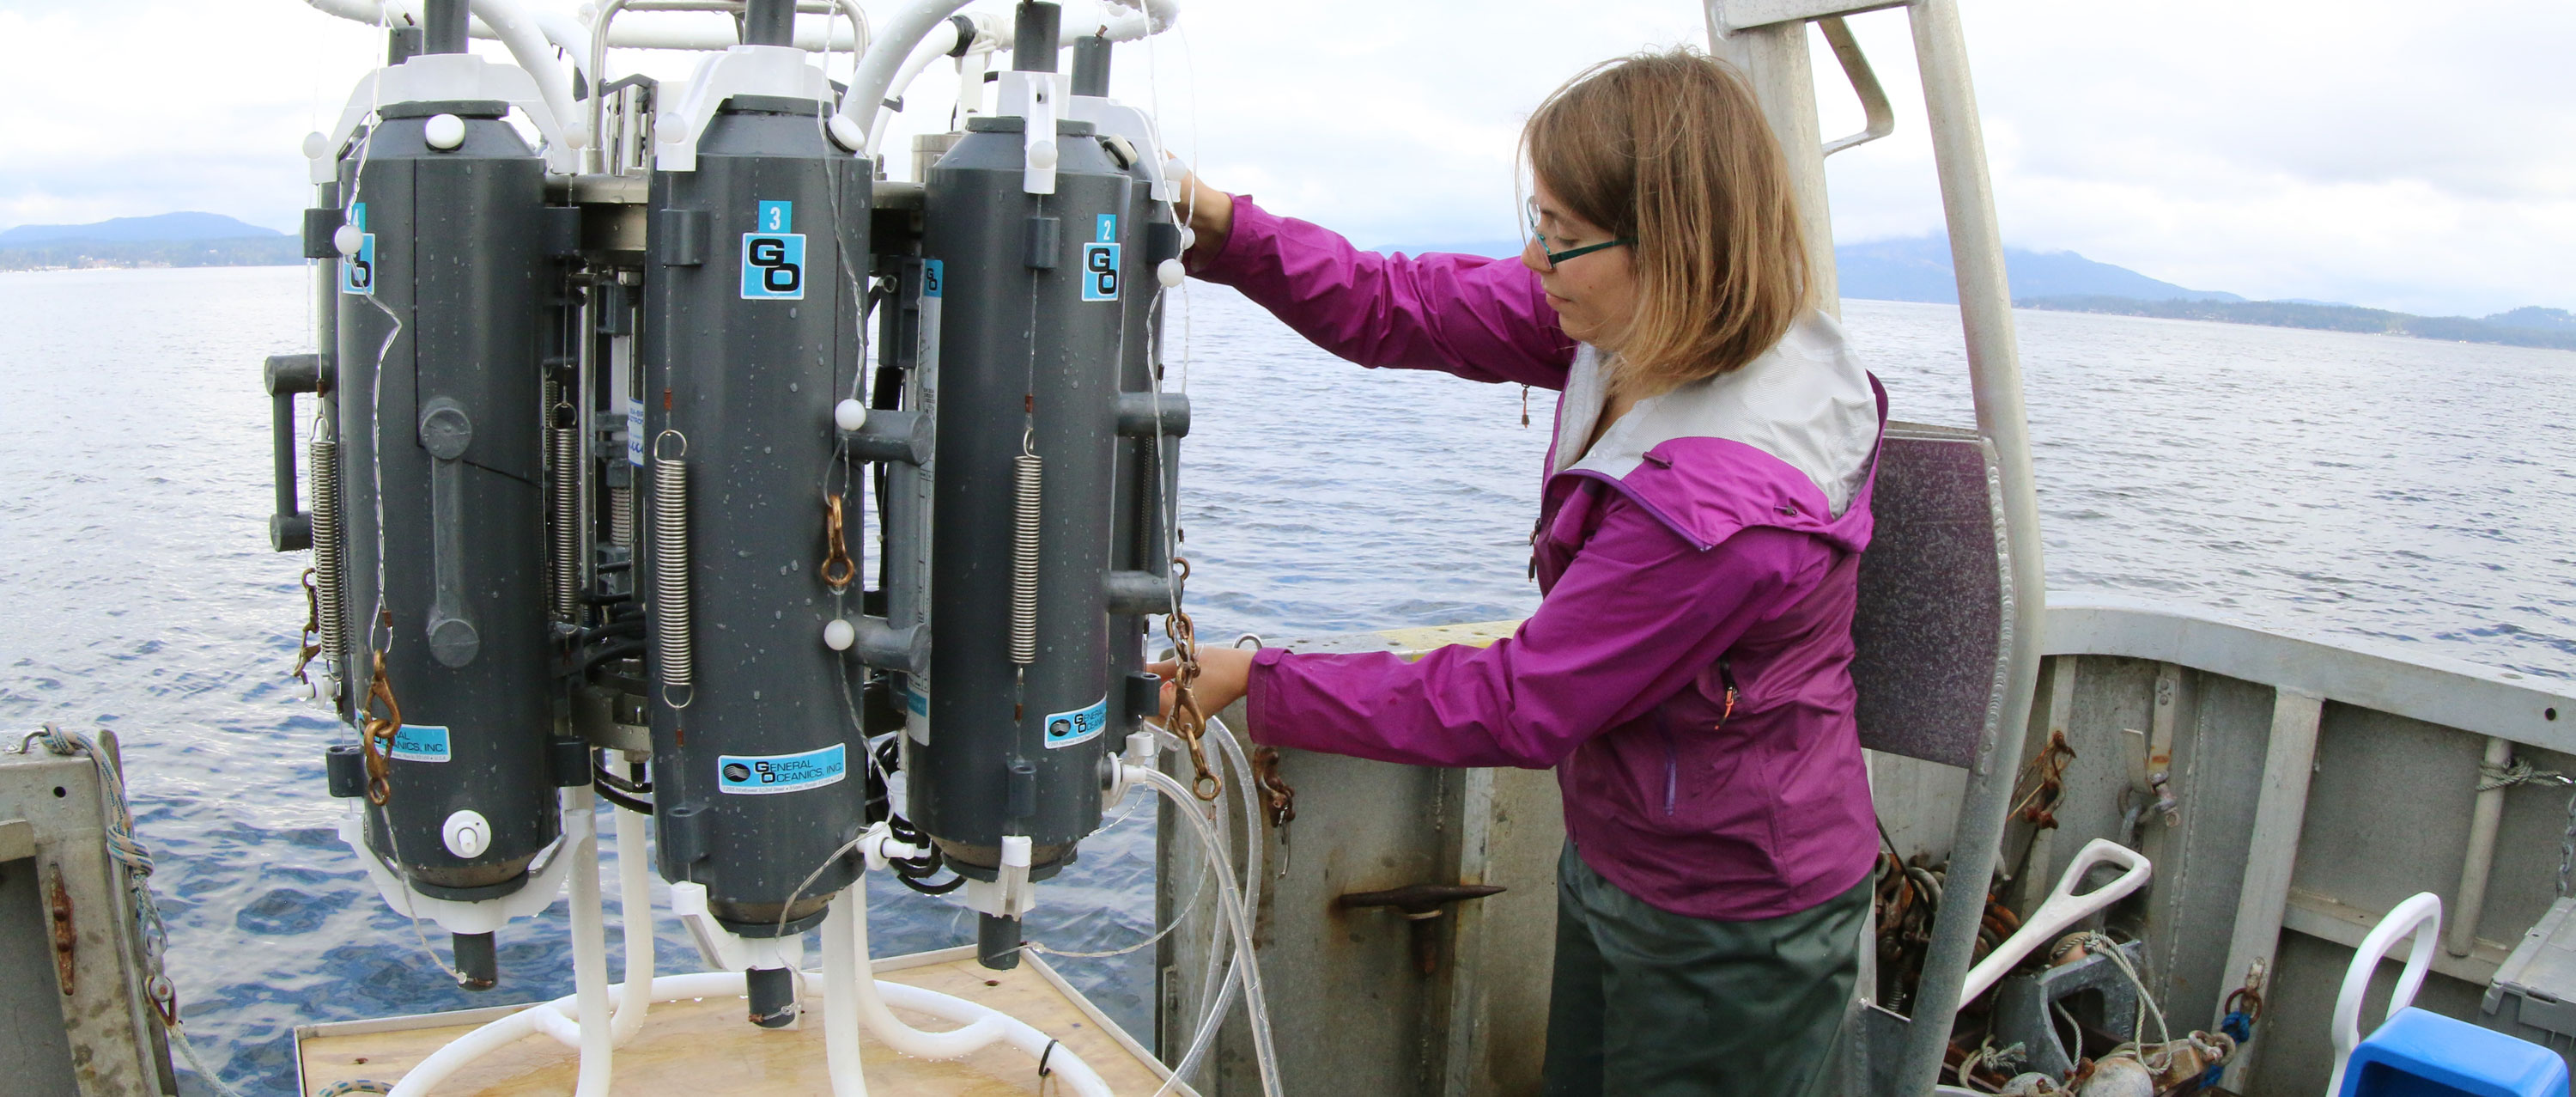 Undergraduate student collecting water samples